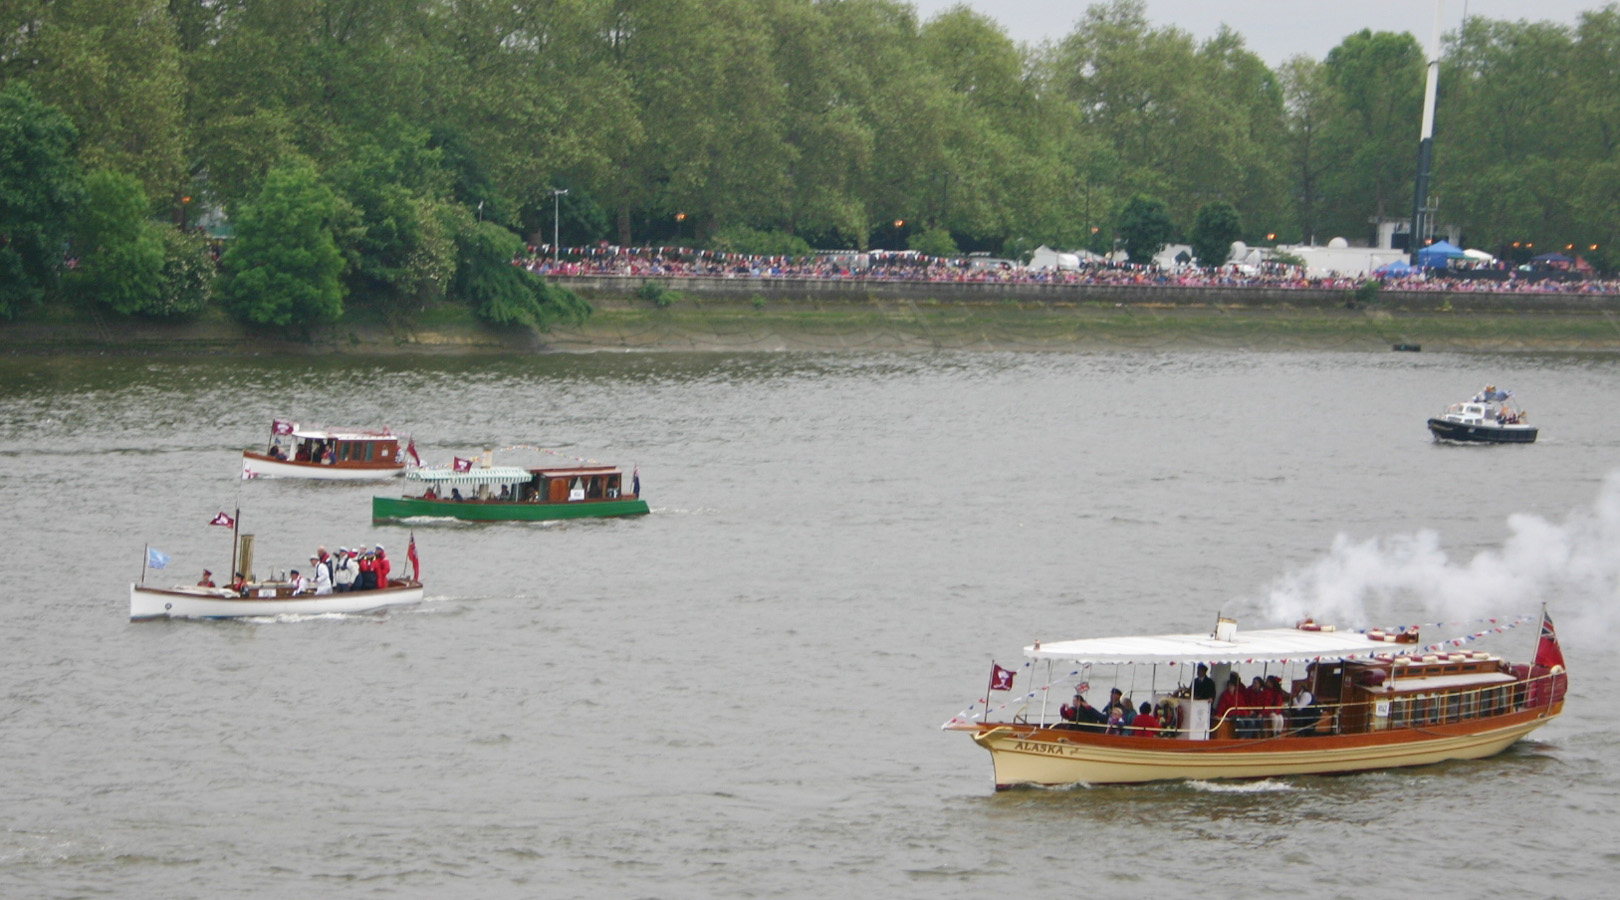 Steam boats in the pagent